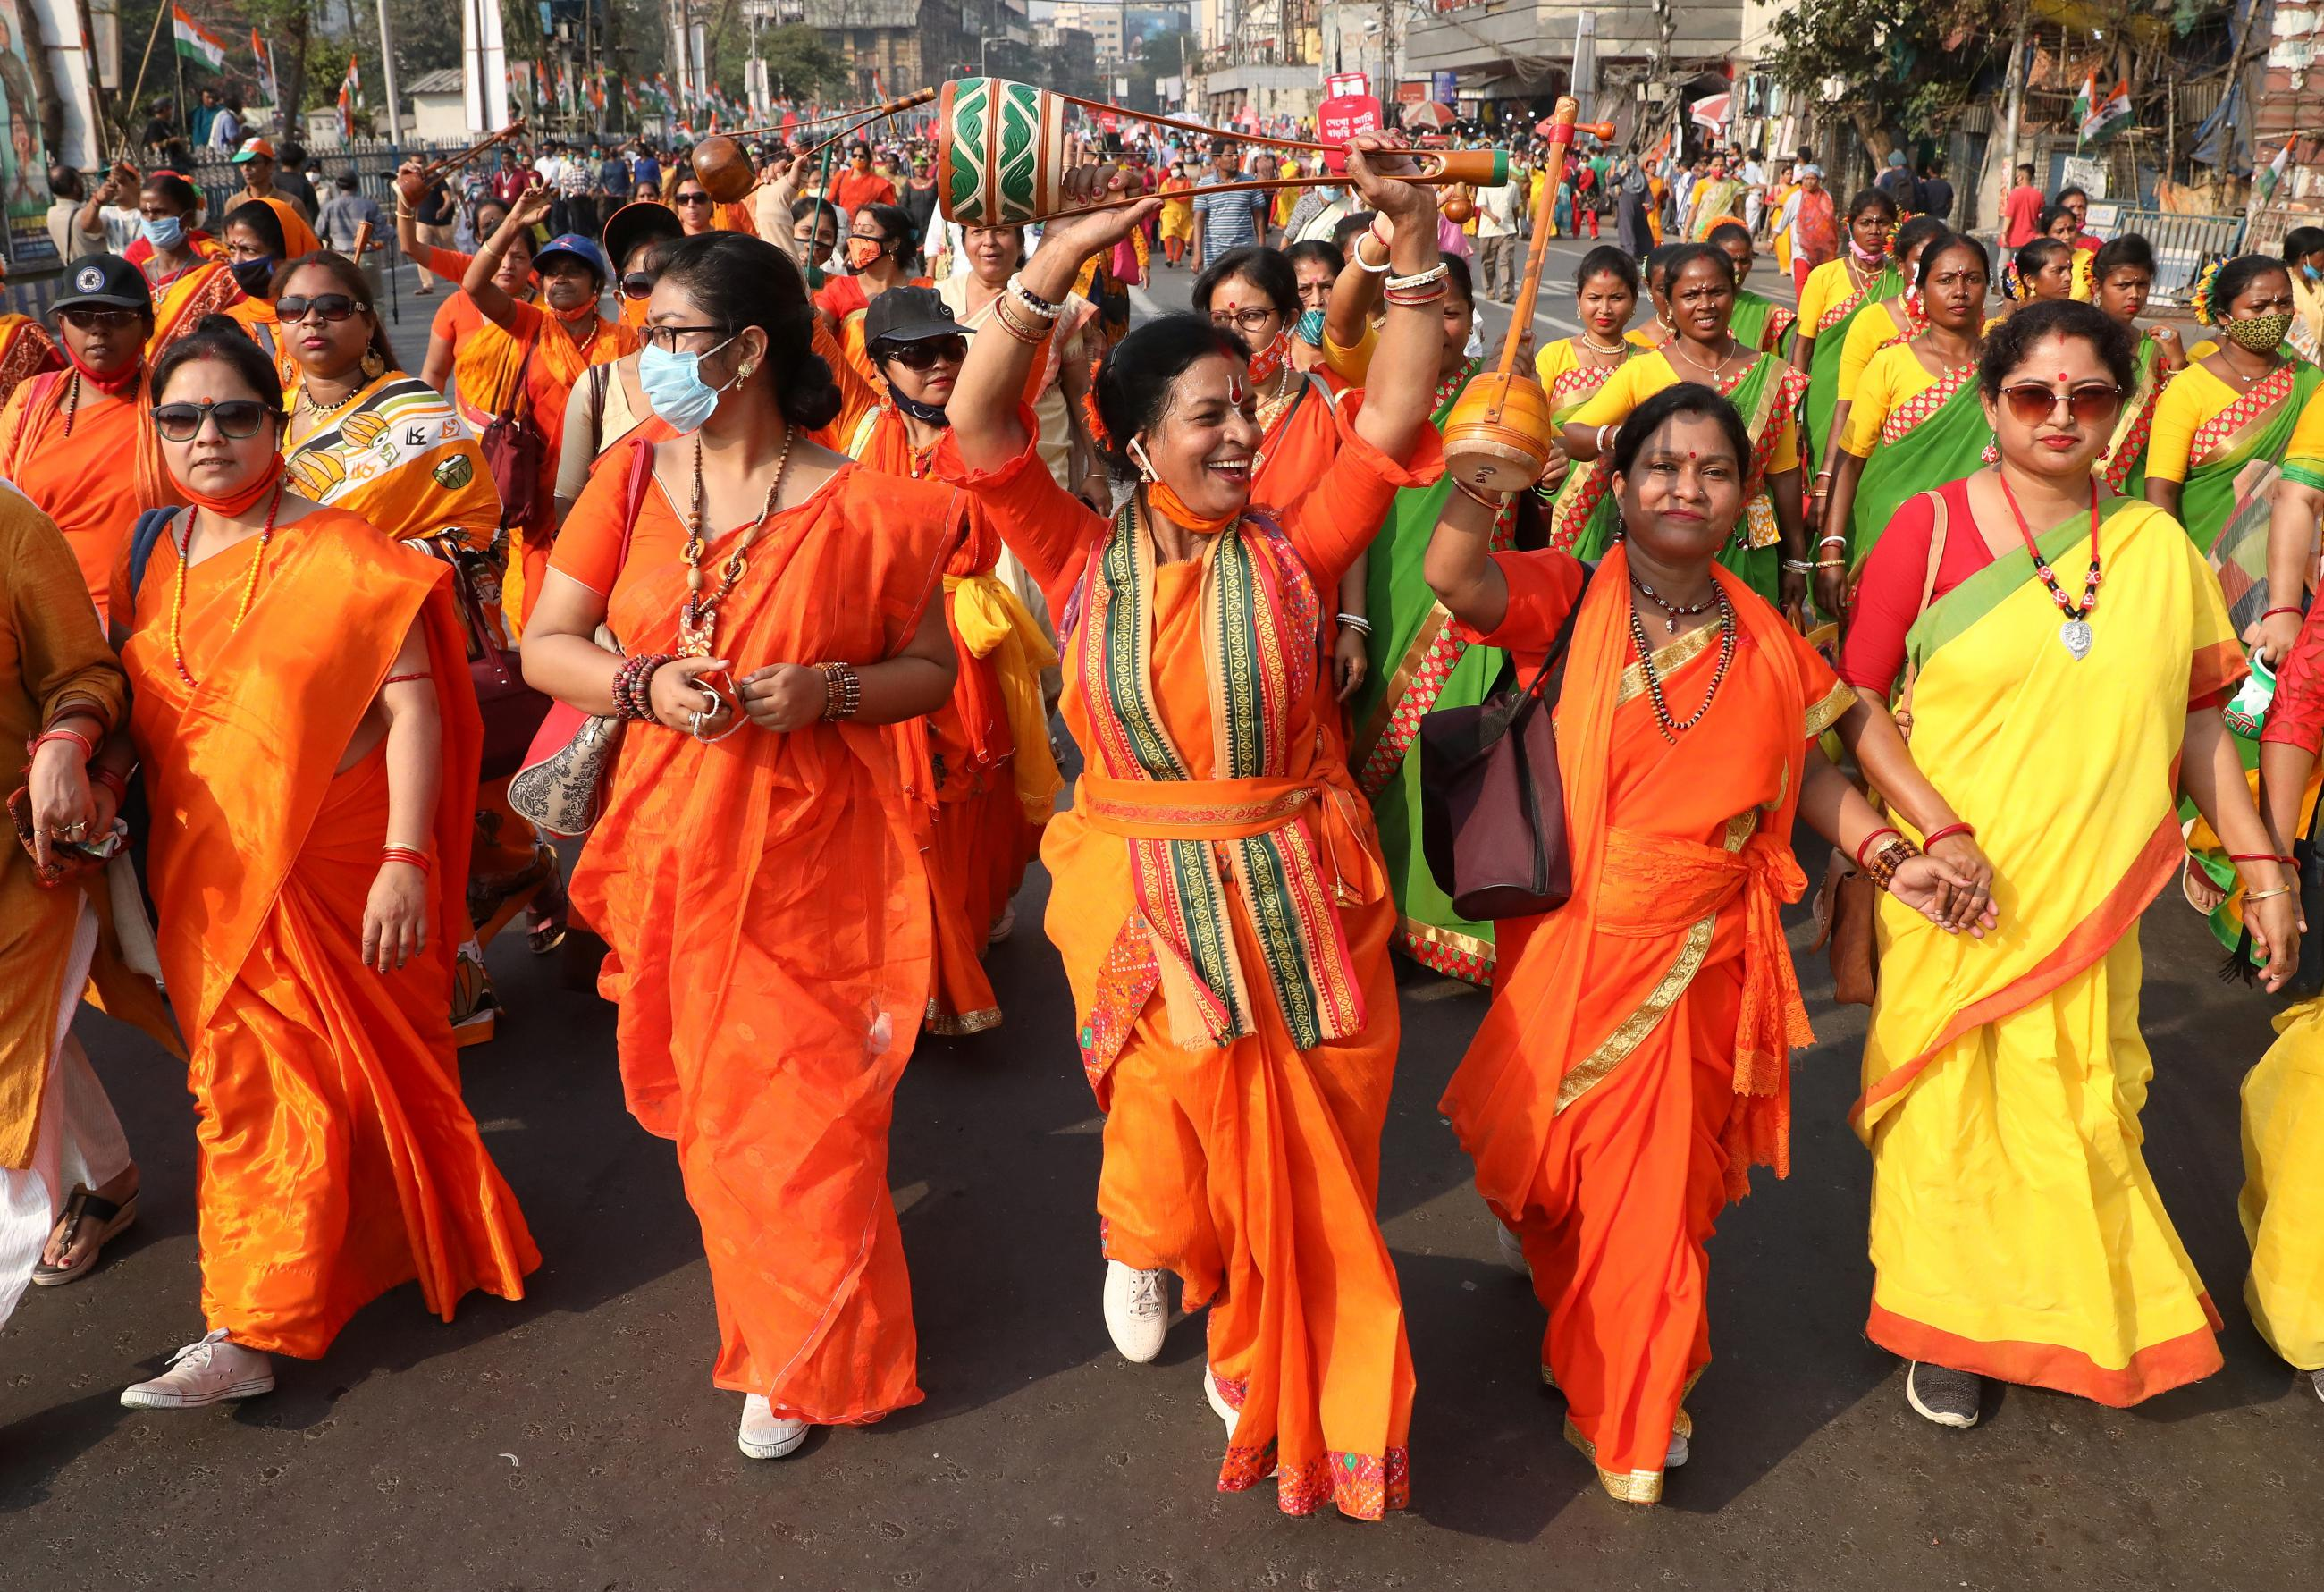 Women attend a protest march on the occasion of International Women's Day in Kolkata, India on March 8, 2021.